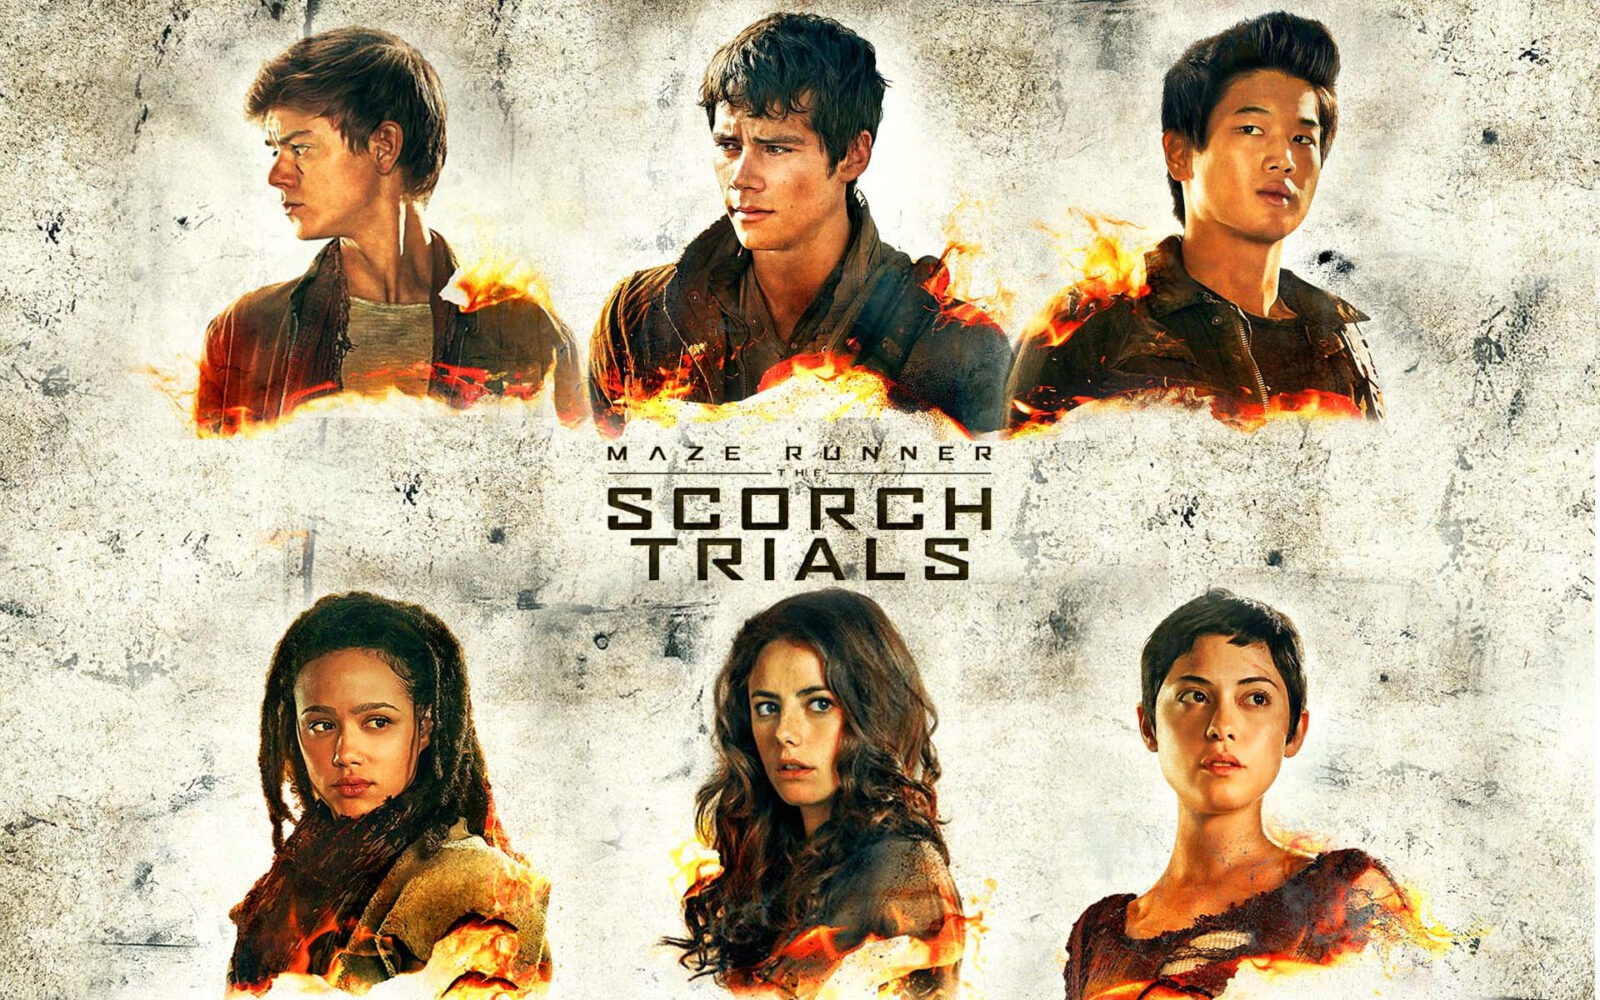 Maze Runner The Scorch Trials 2015 Wallpapers (47 Wallpapers)